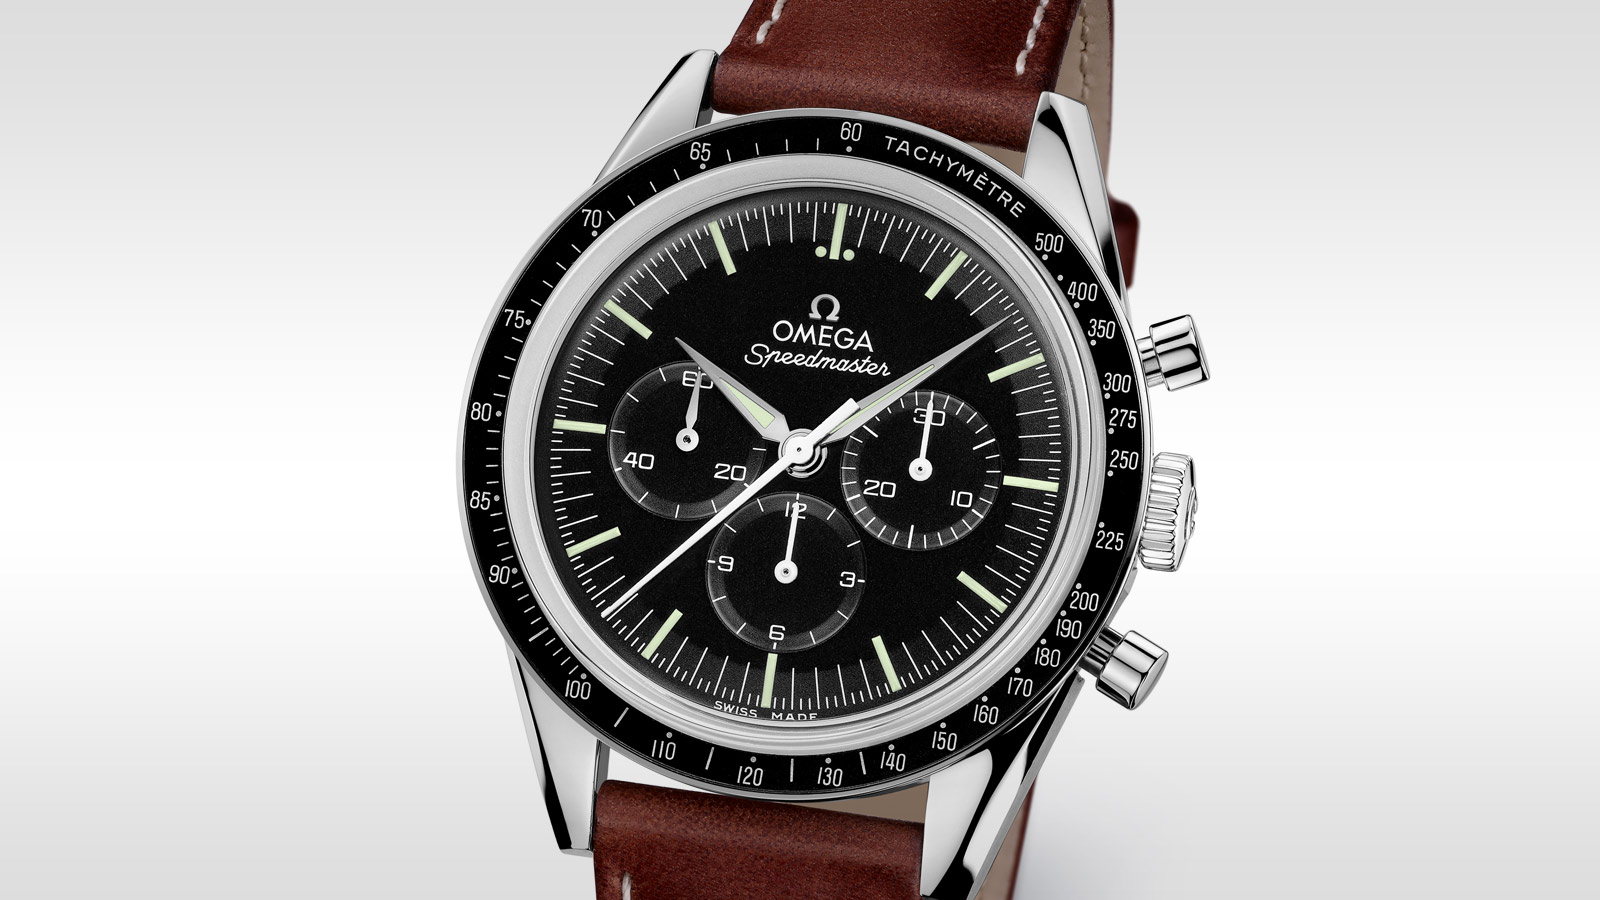 Speedmaster ムーンウォッチ Moonwatch Chronograph 39.7 mm - 311.32.40.30.01.001 - ビュー 2